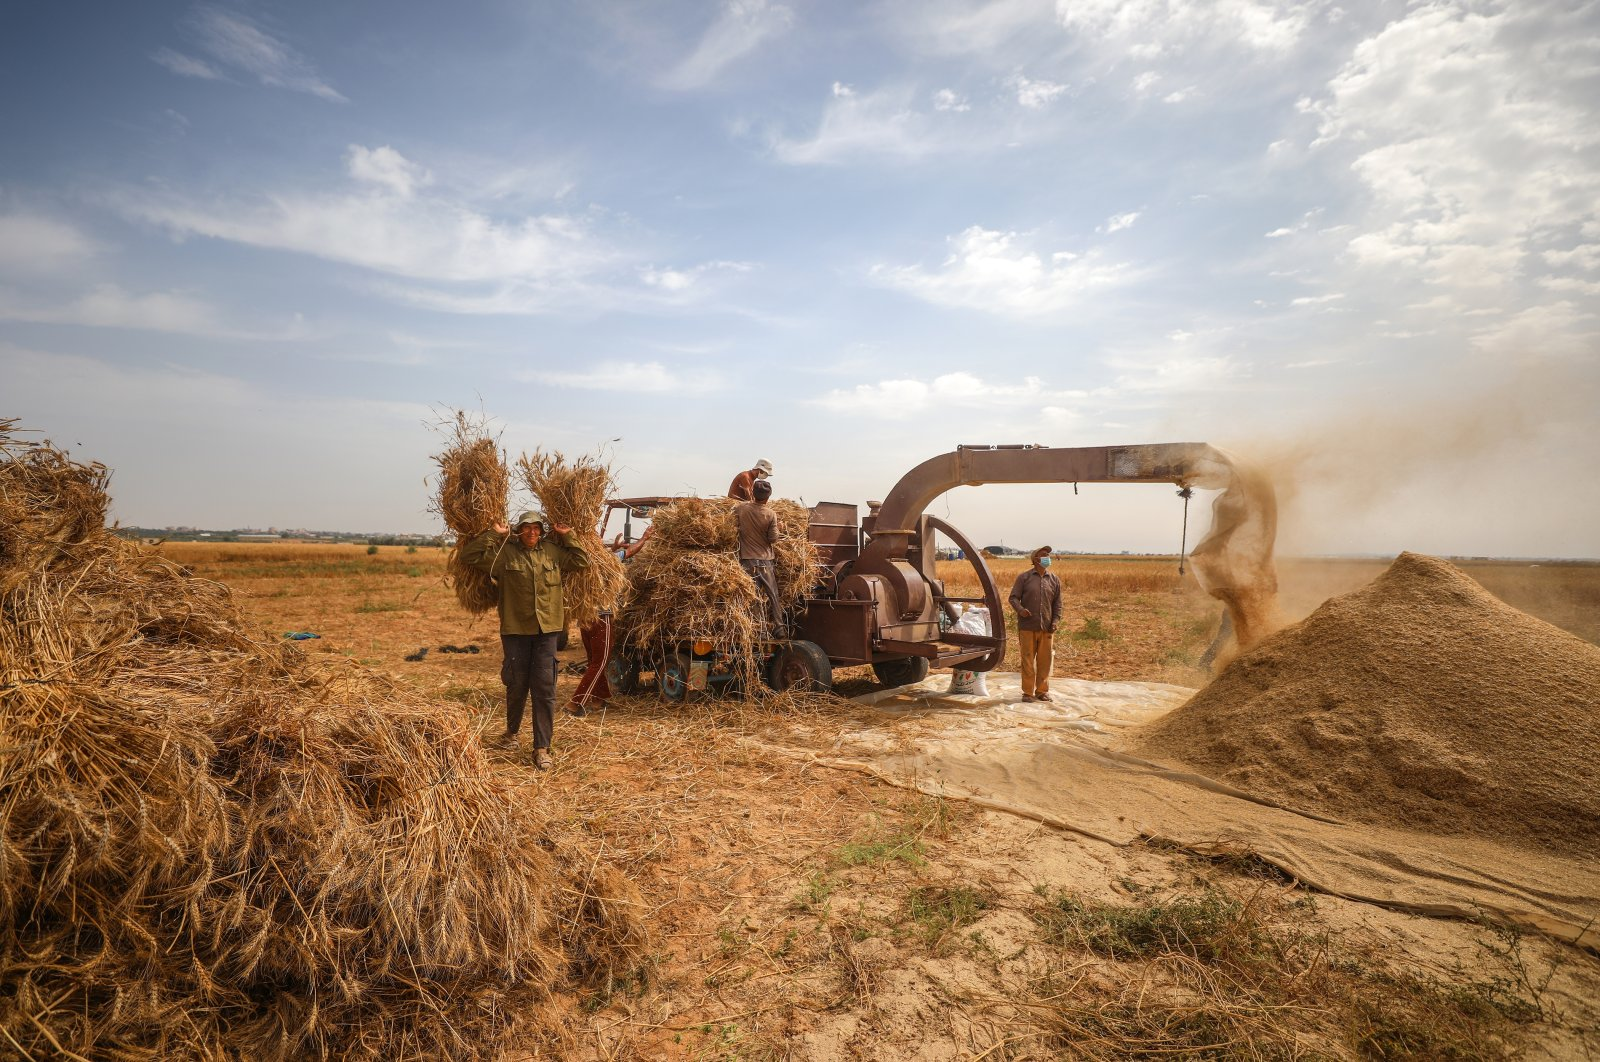 Palestinian farmers harvest seasonal wheat in southern Han Yunus province in the blockaded Gazza Strip, Palestine, May 15, 2020. (AA Photo)